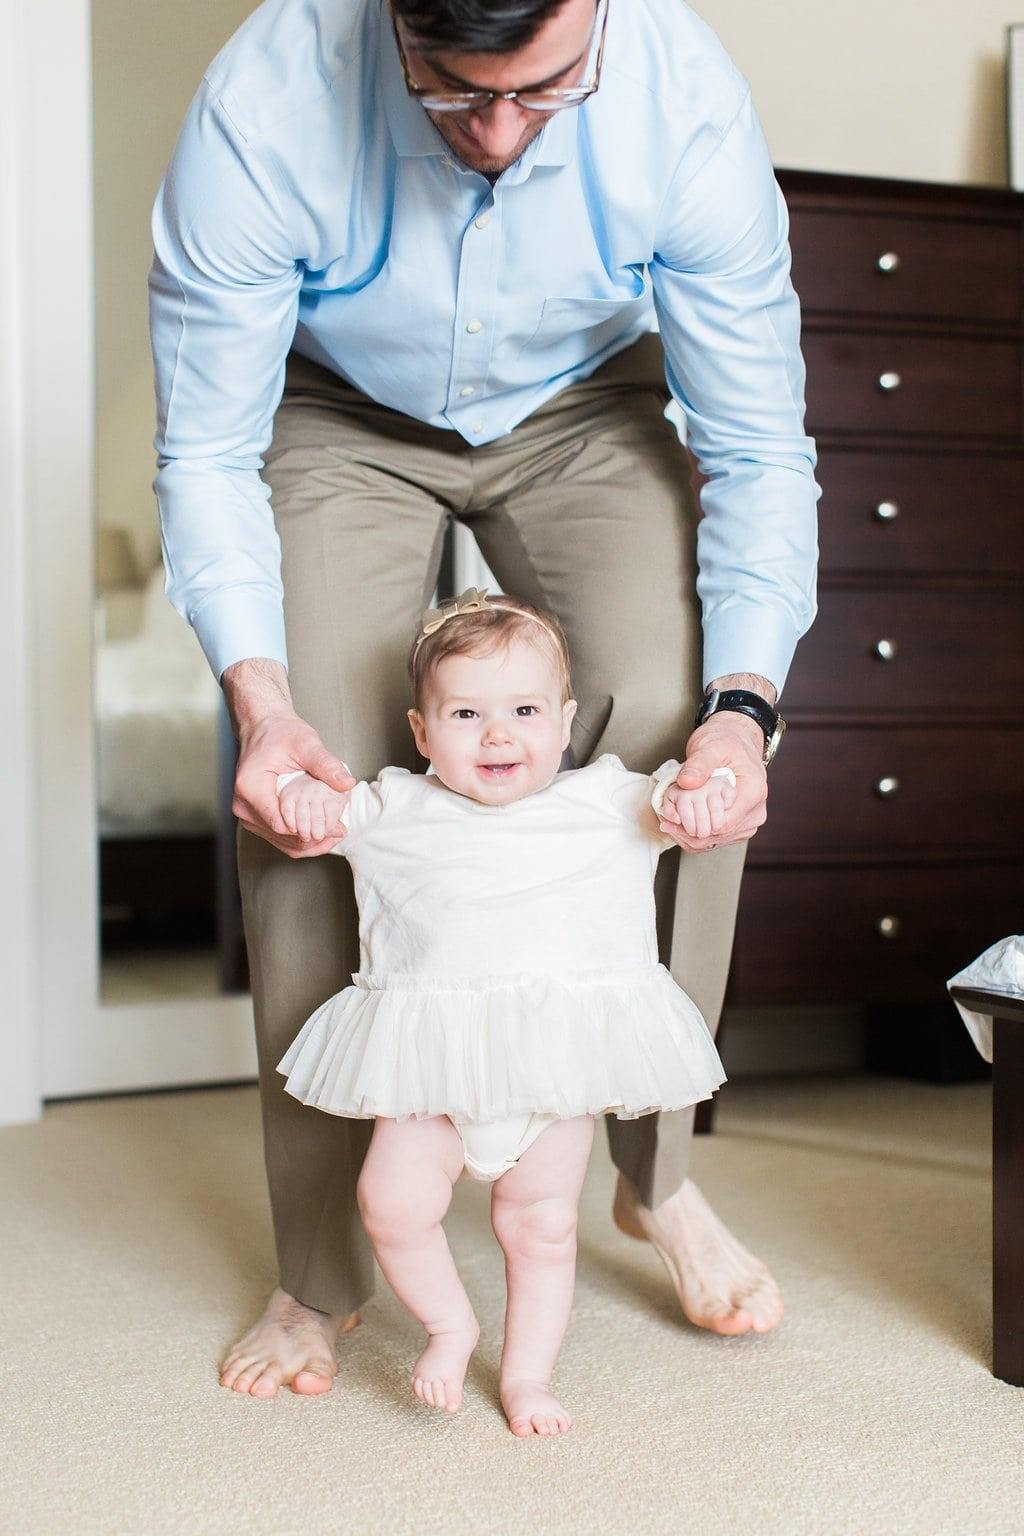 Father walking his baby daughter around the room during in-home lifestyle family photography session